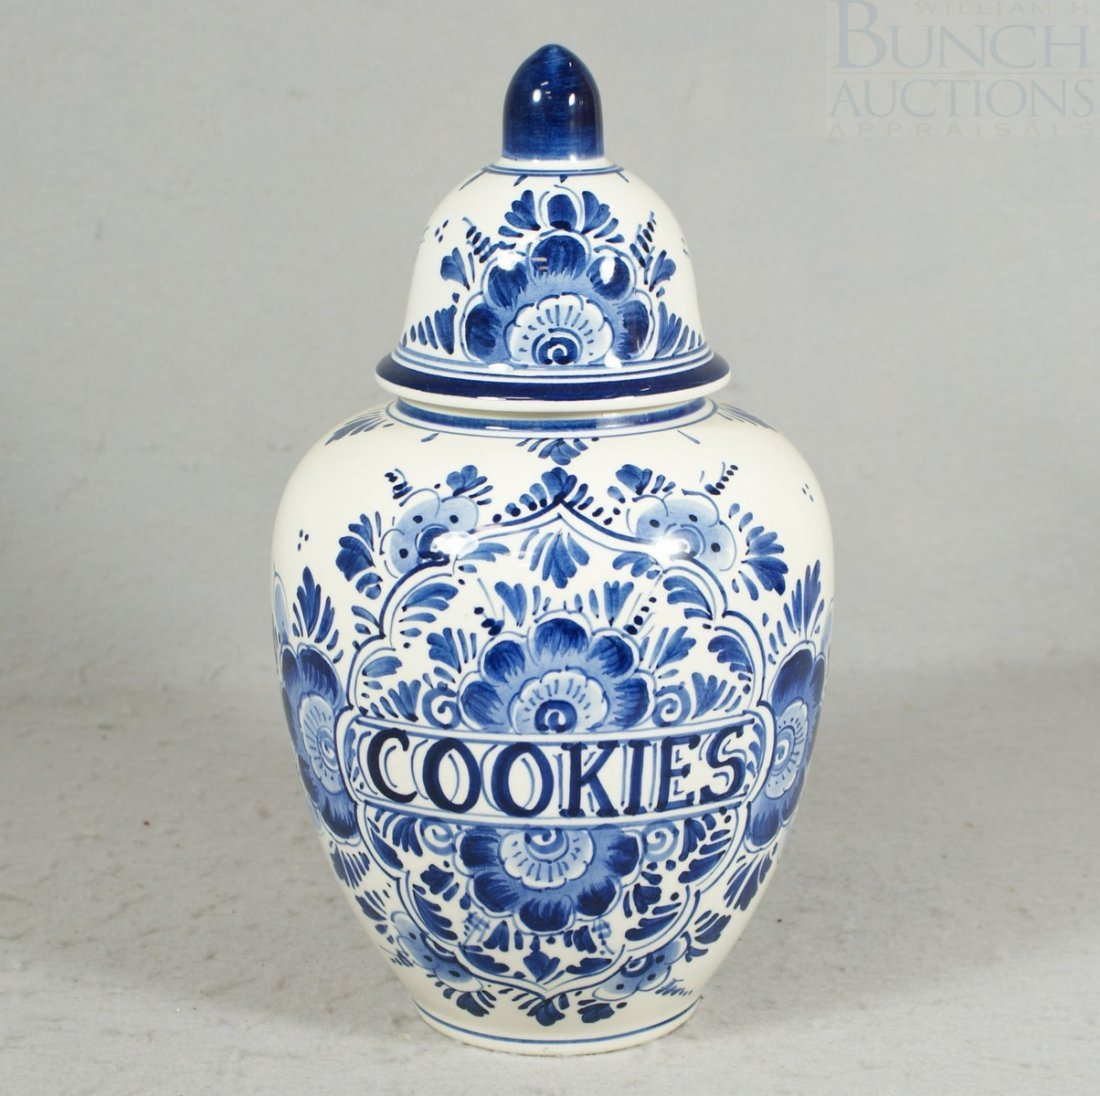 3069: Delft blue decorated cookie jar, marked Delft/Hol